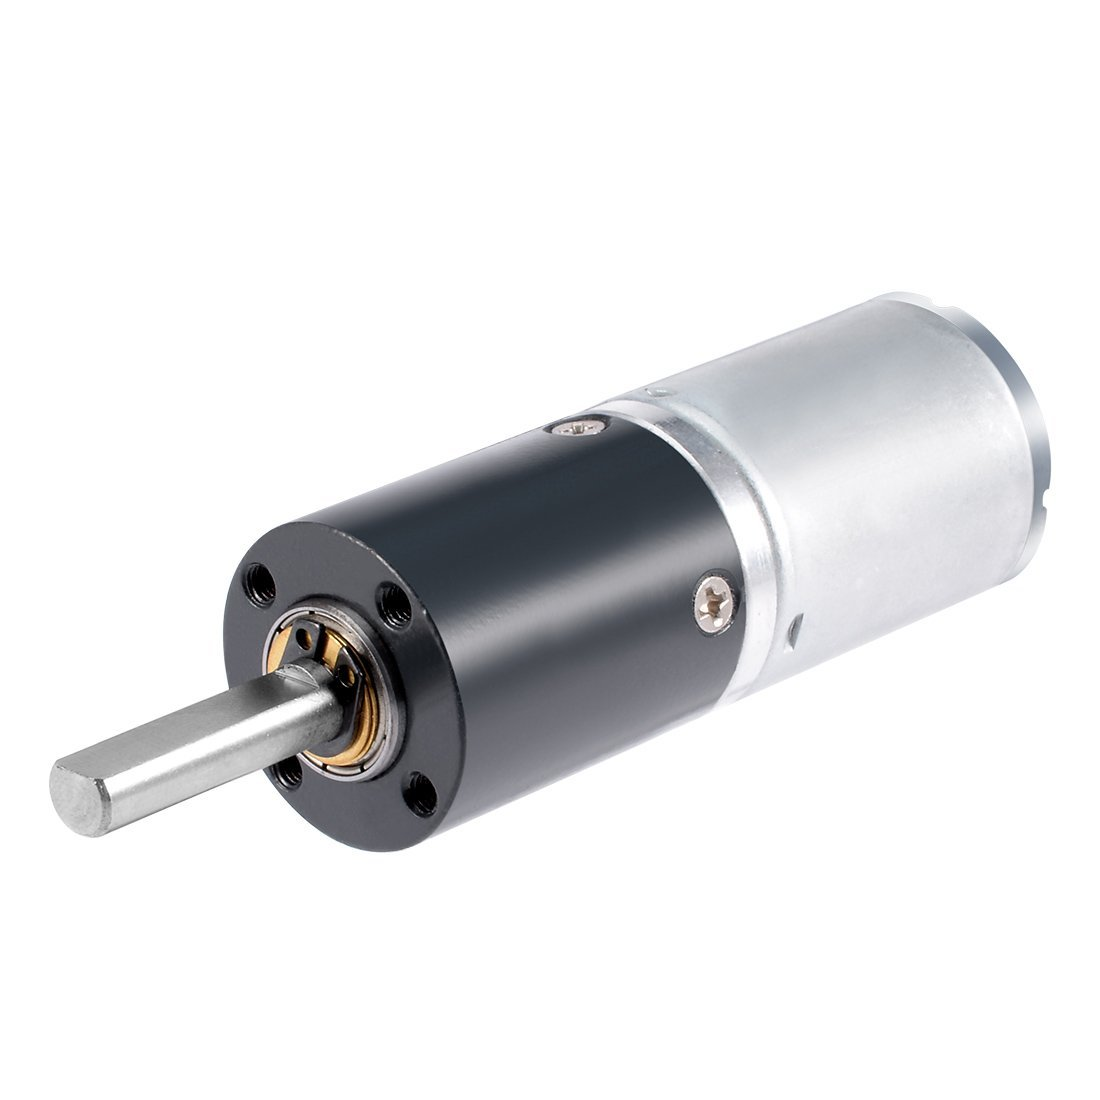 uxcell DC 24V 120RPM Low Noise Small Planetary Motor High Torque Speed Reduction Electric Gearmotor 24mm Diameter -ZGX24RP36i